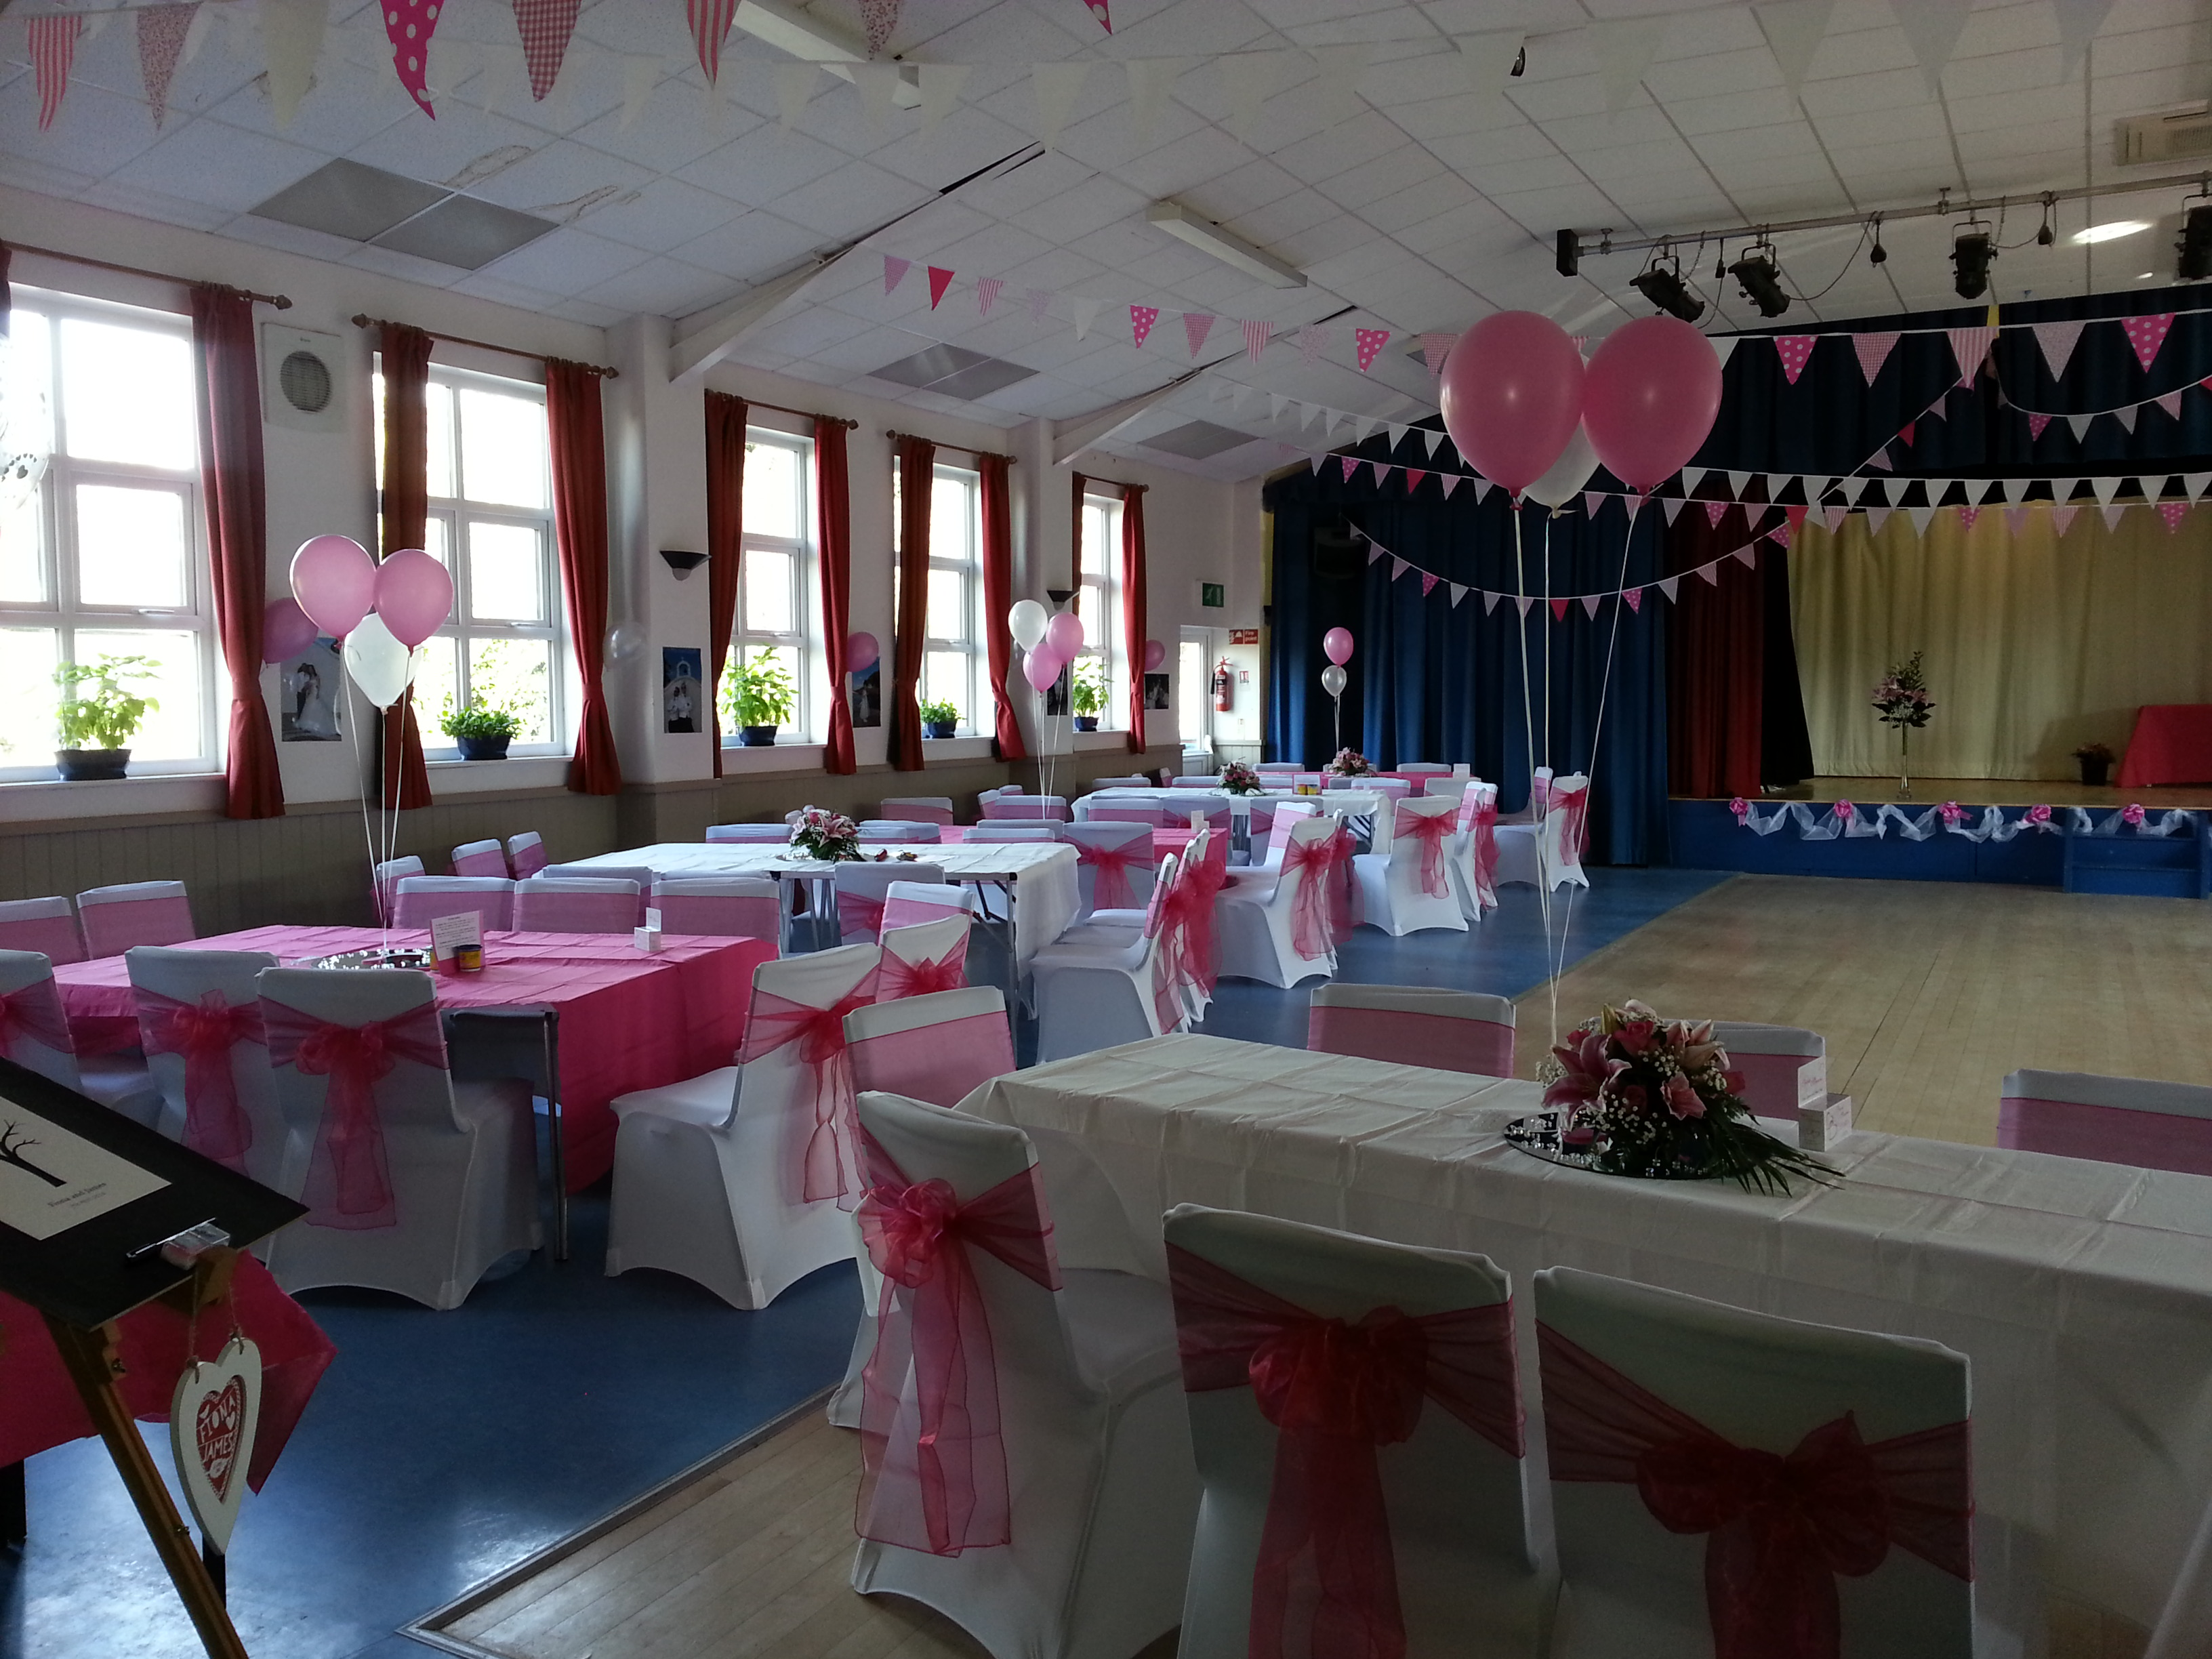 Village hall mottram st andrew wedding decor main hall junglespirit Images